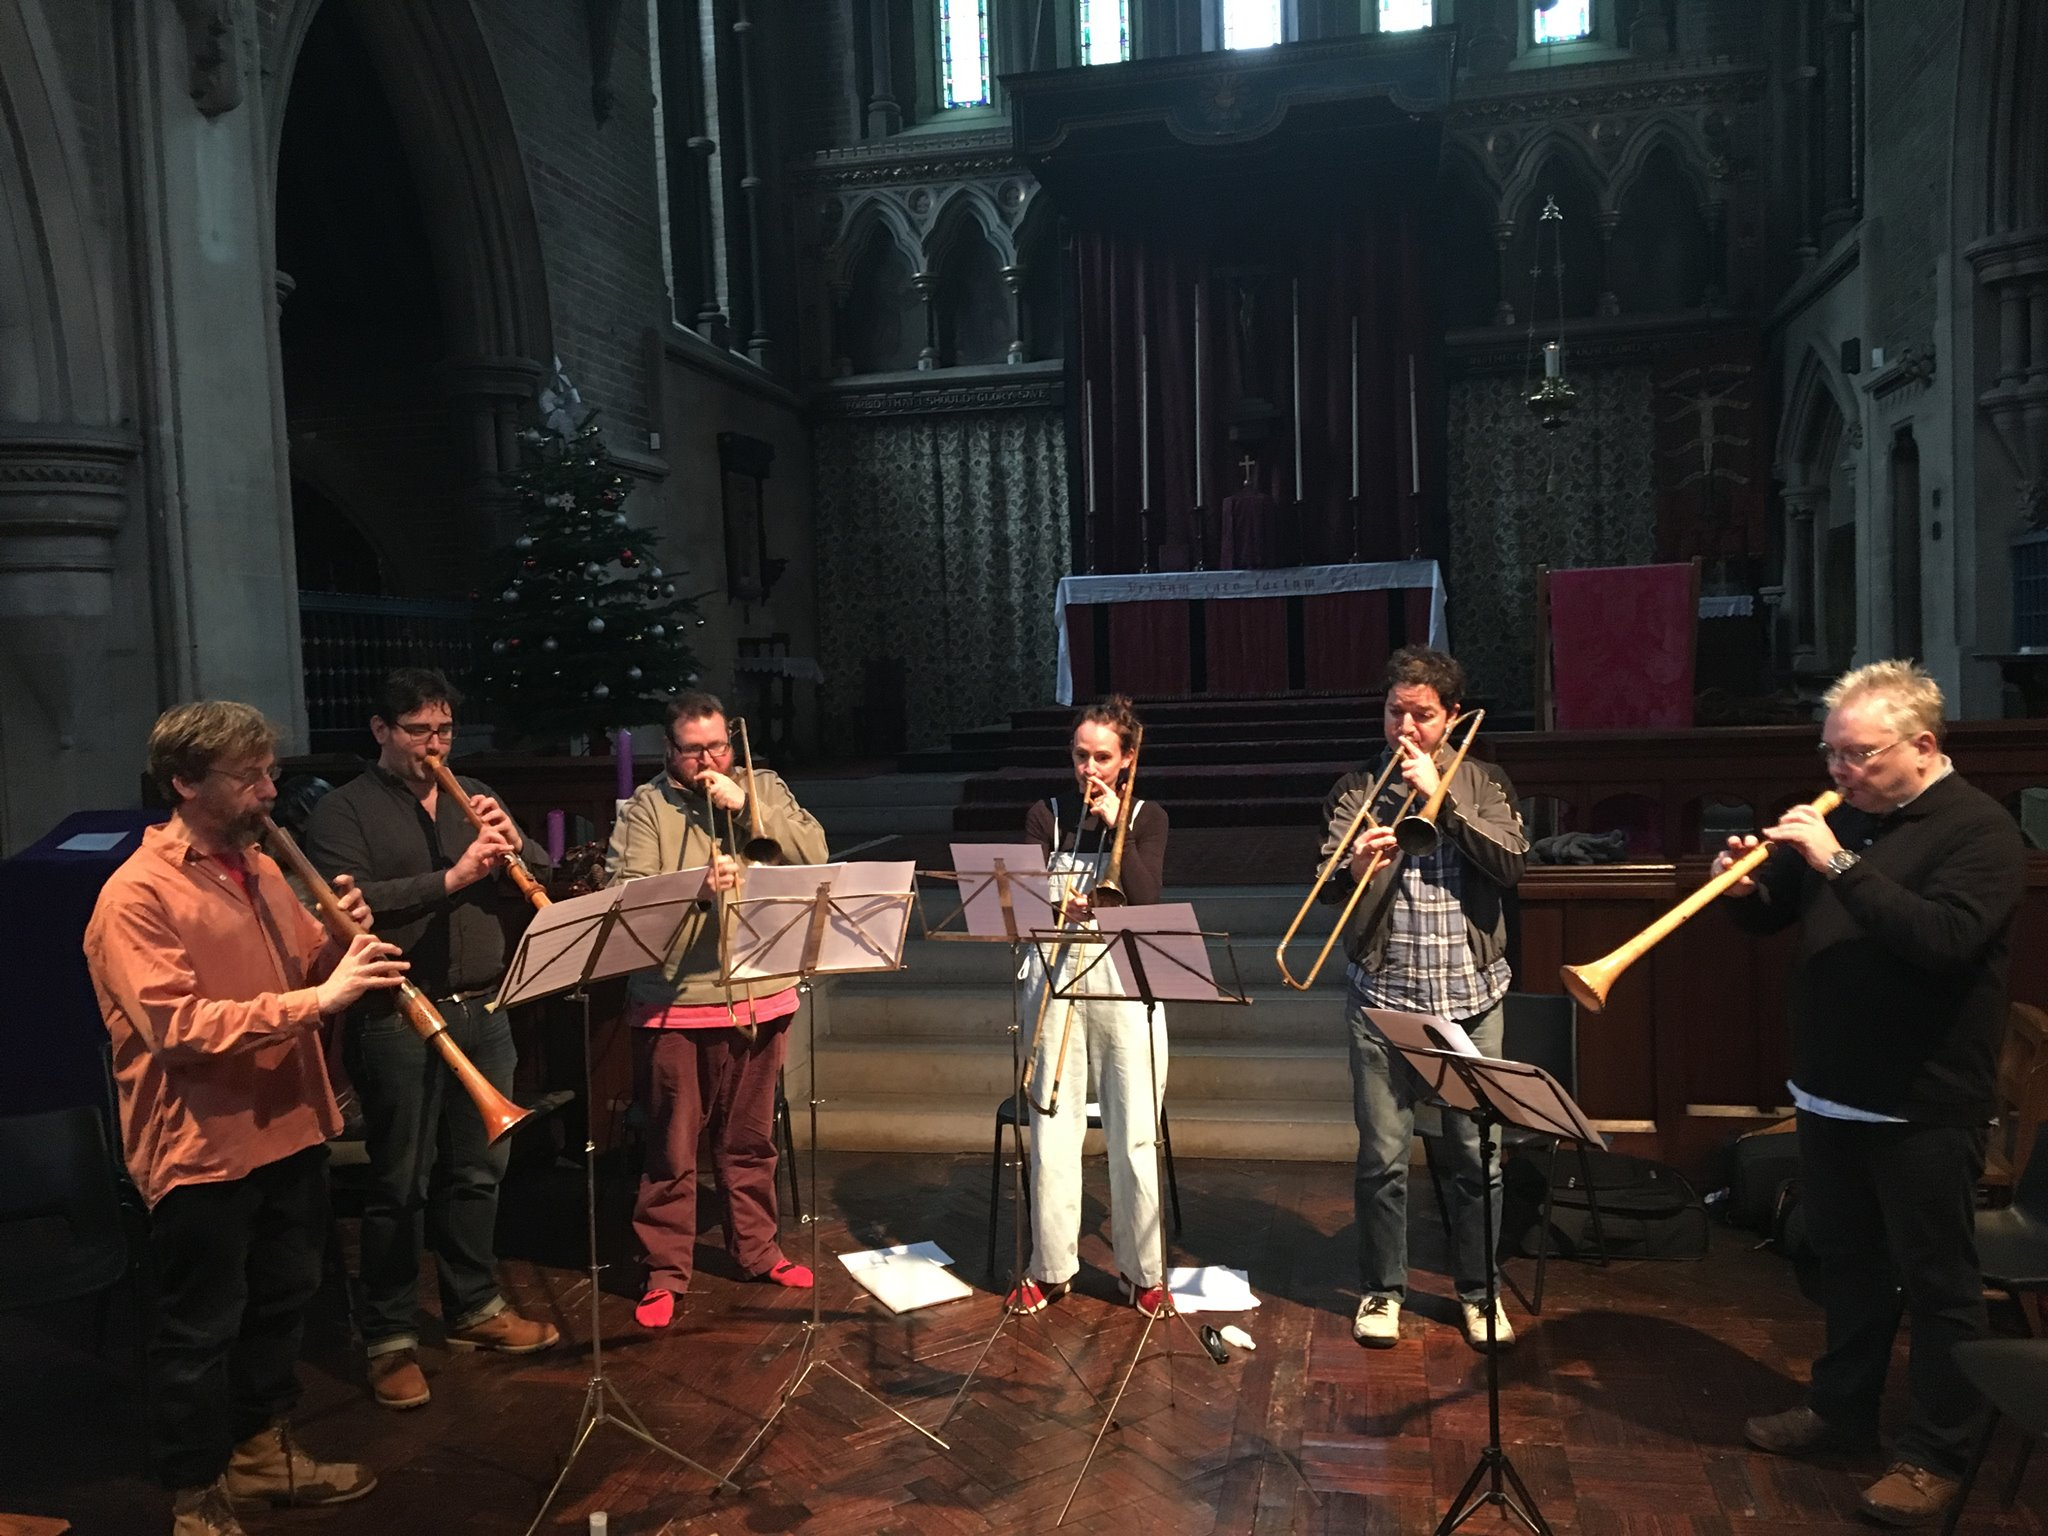 Rehearsing a piece for 'Heigh Ho Holiday' at Saint John's Smith Square